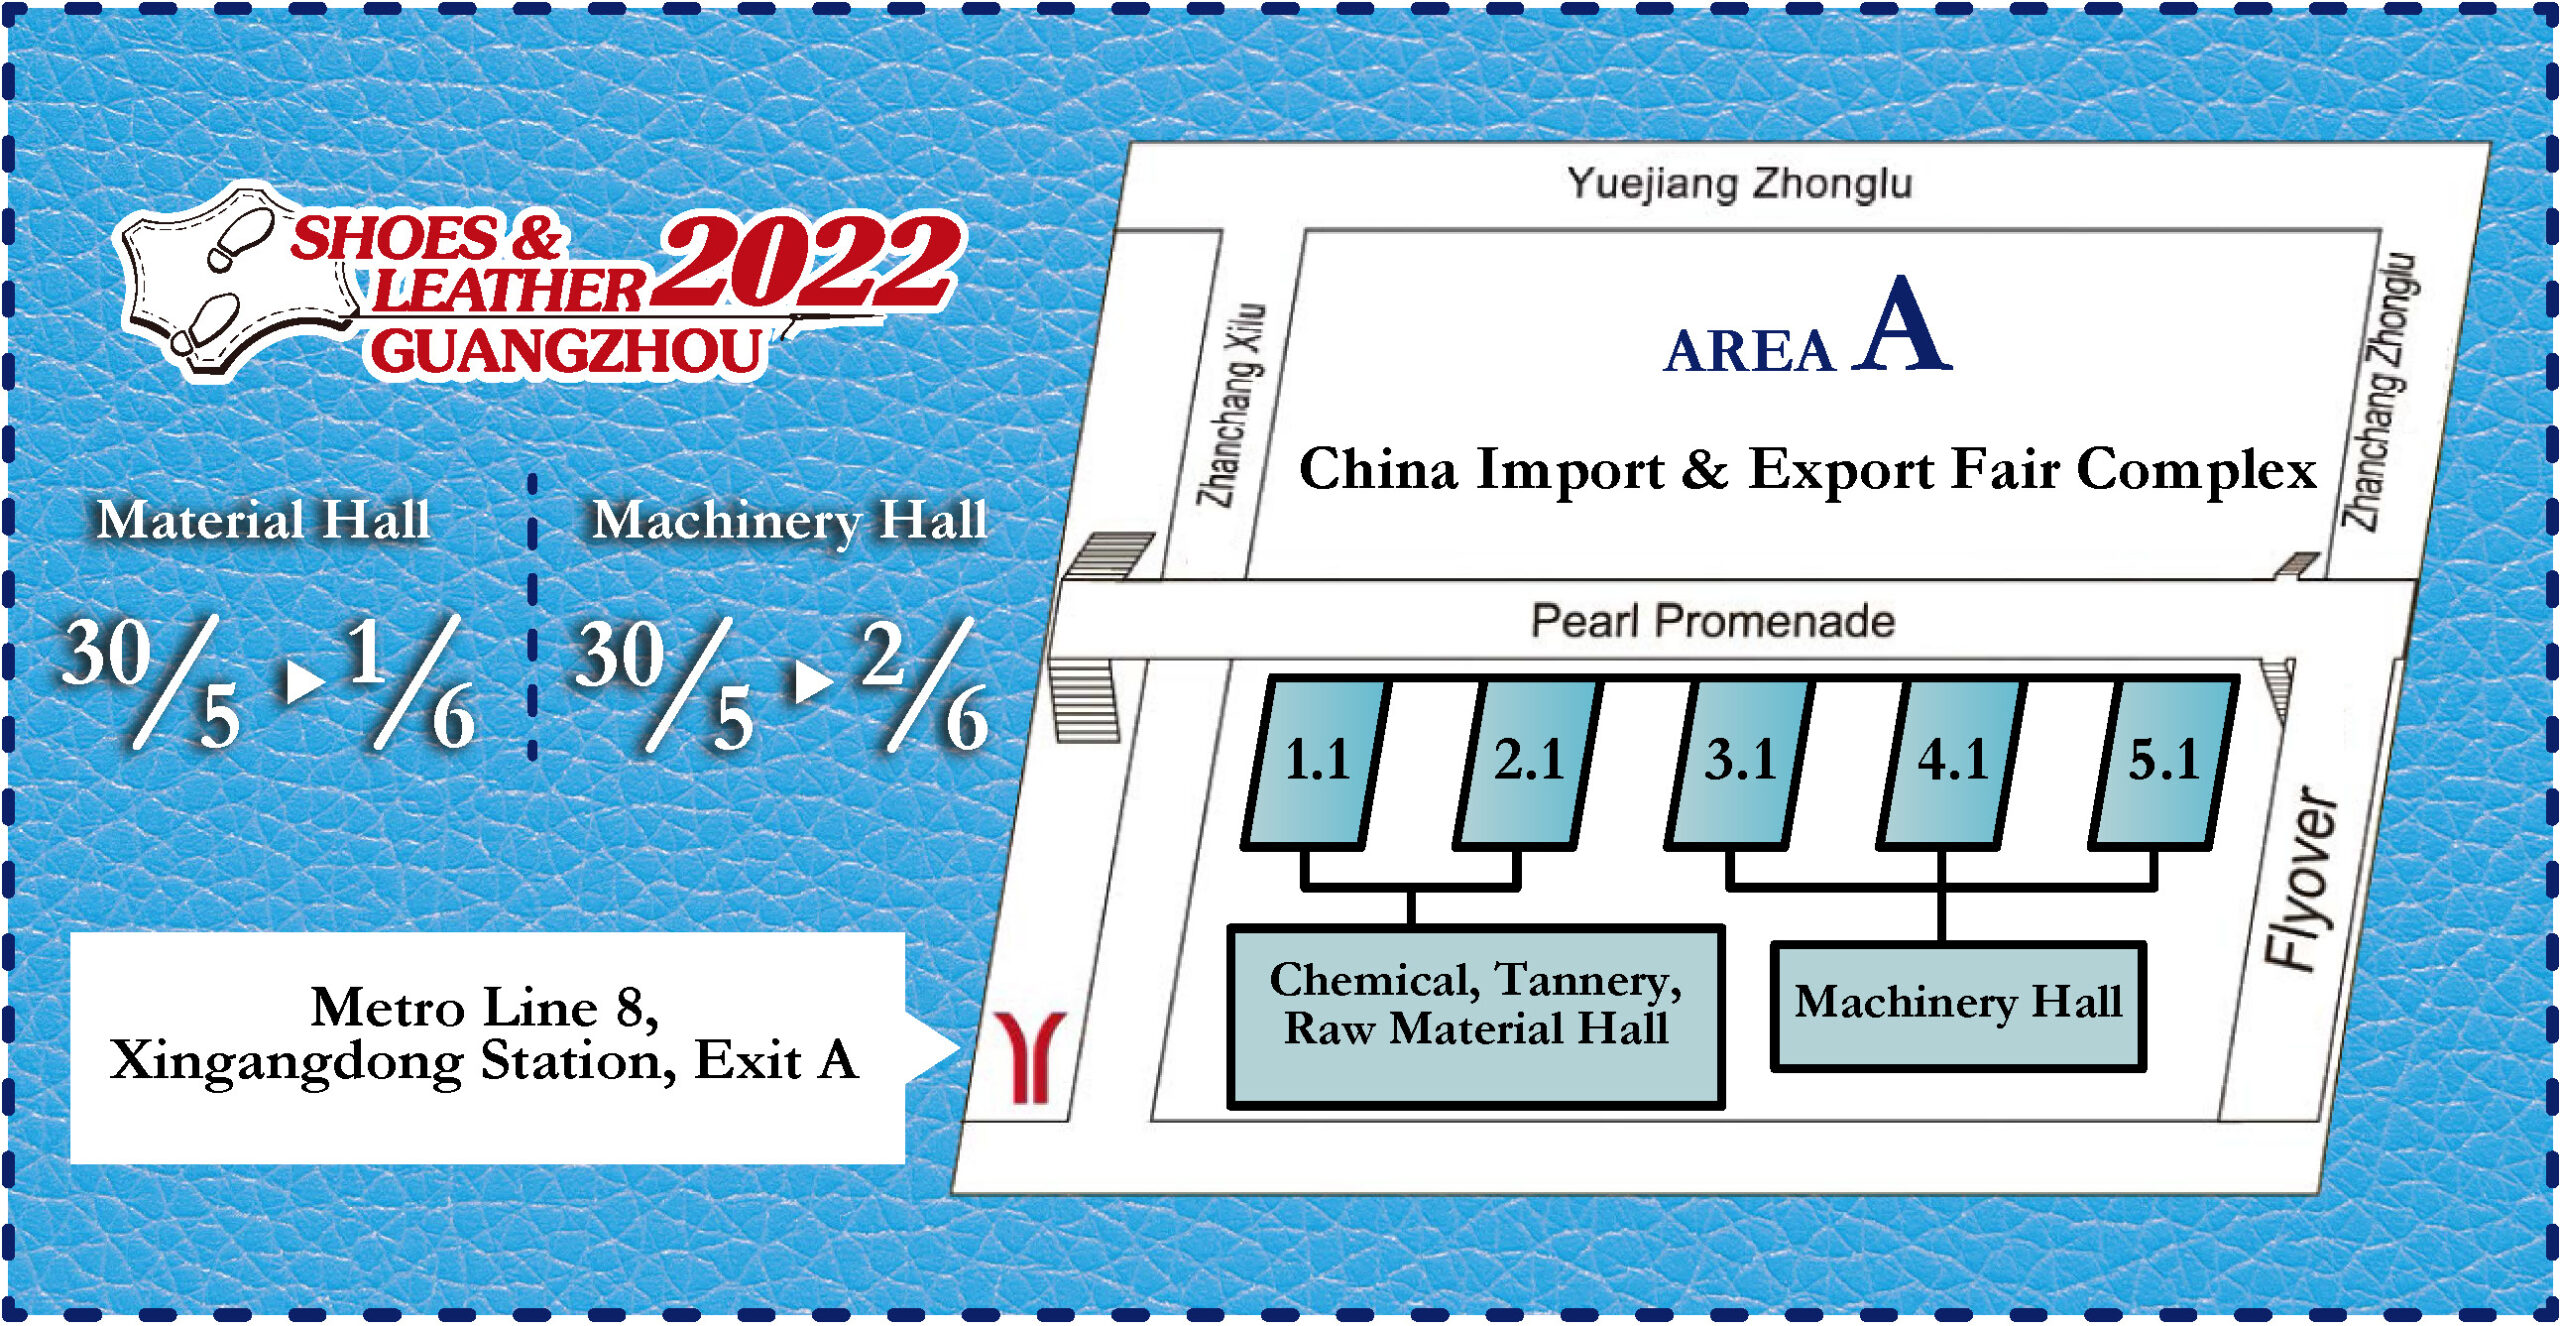 Shoes & Leather - Guangzhou 2022 Hall Layout